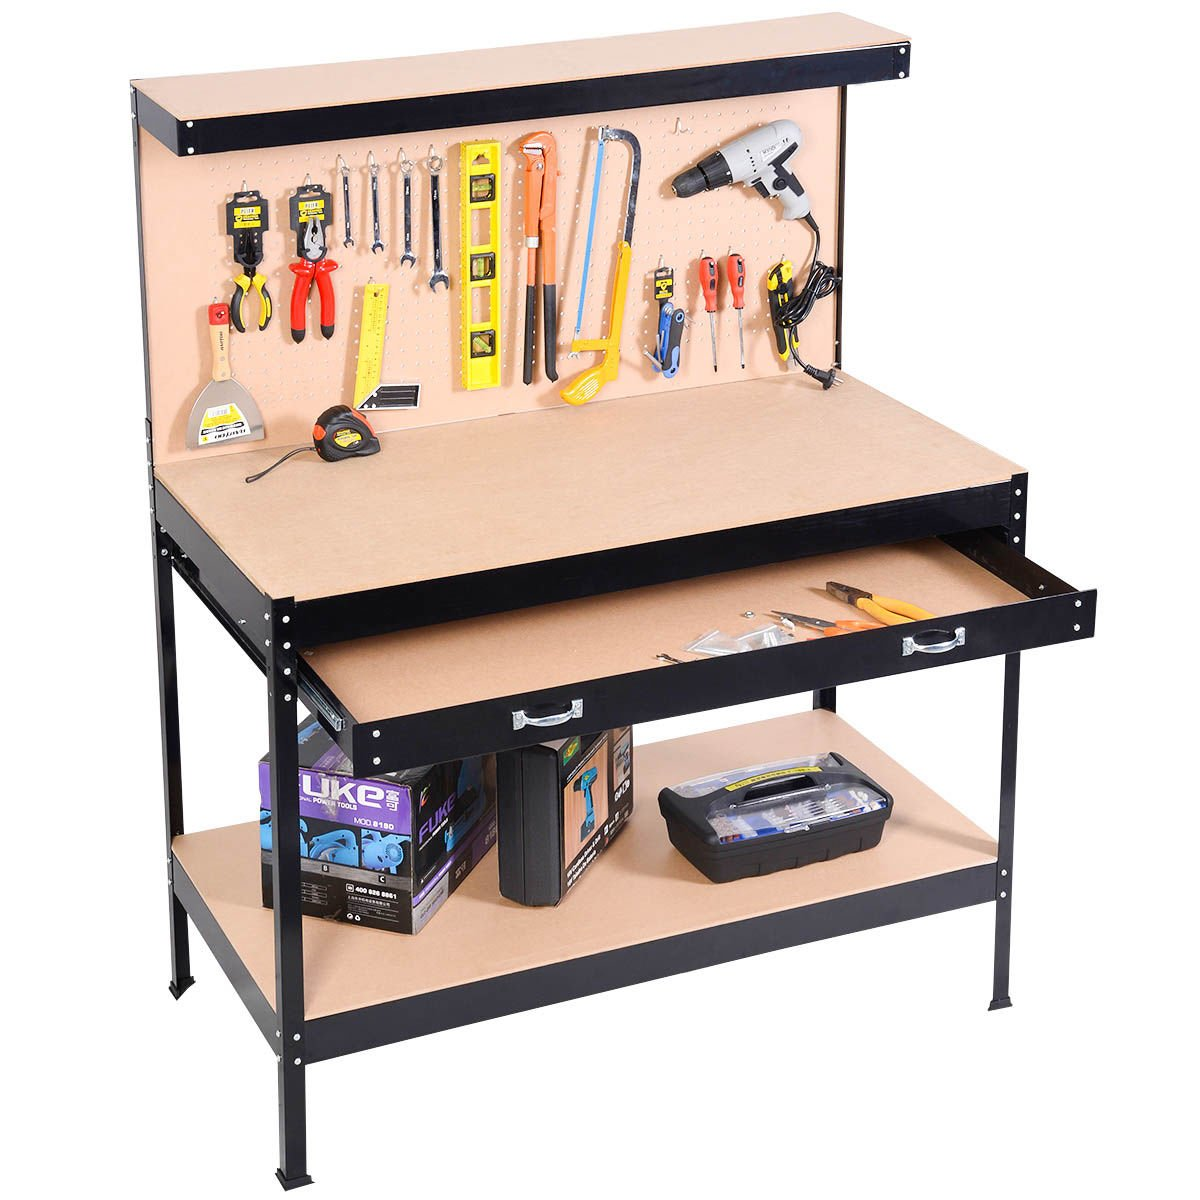 Unique Storage Drawers Mod Framing Table